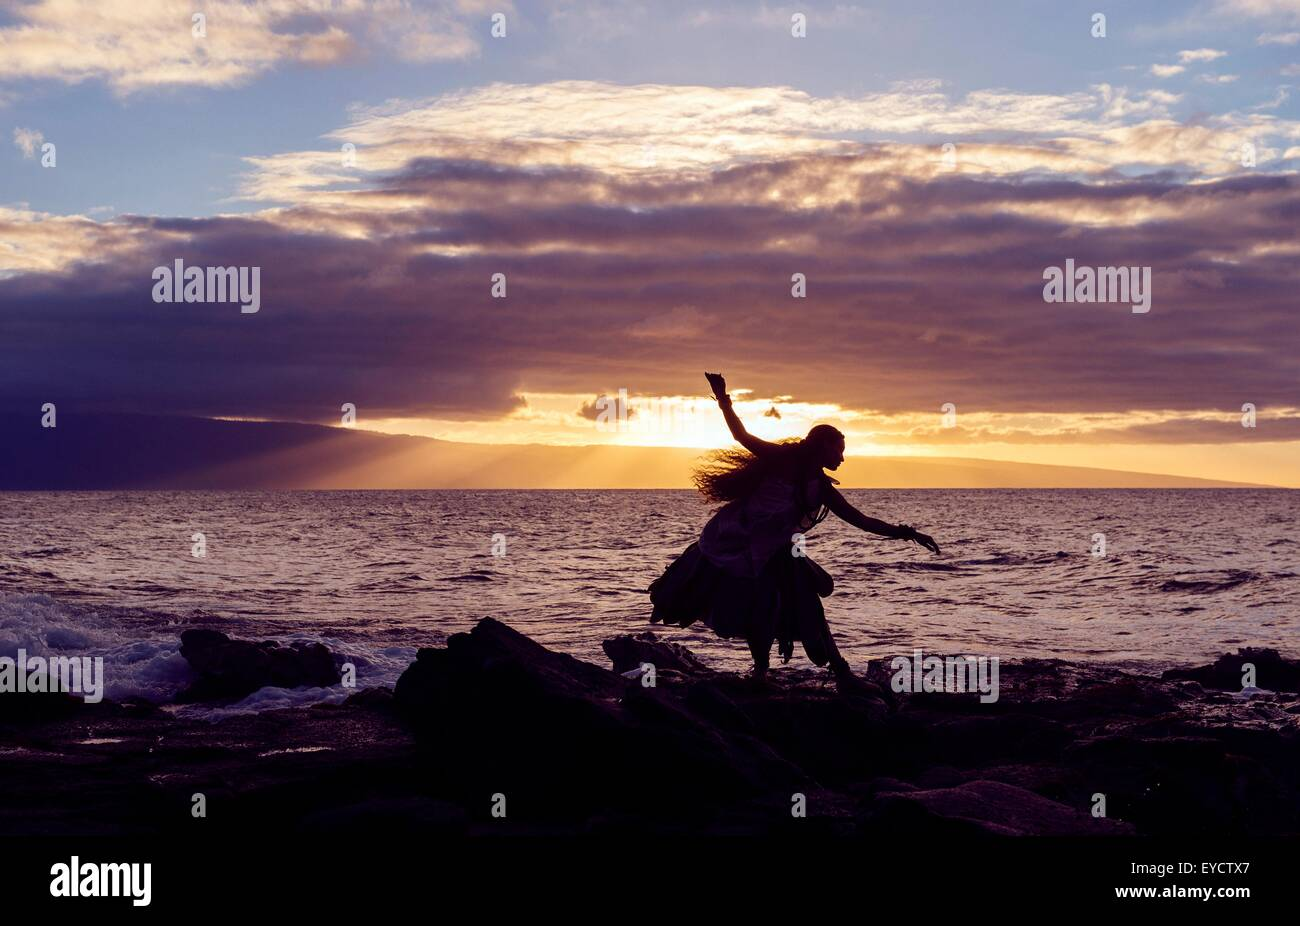 Silhouetted woman hula dancing on coastal rocks wearing traditional costume at sunset, Maui, Hawaii, USA - Stock Image